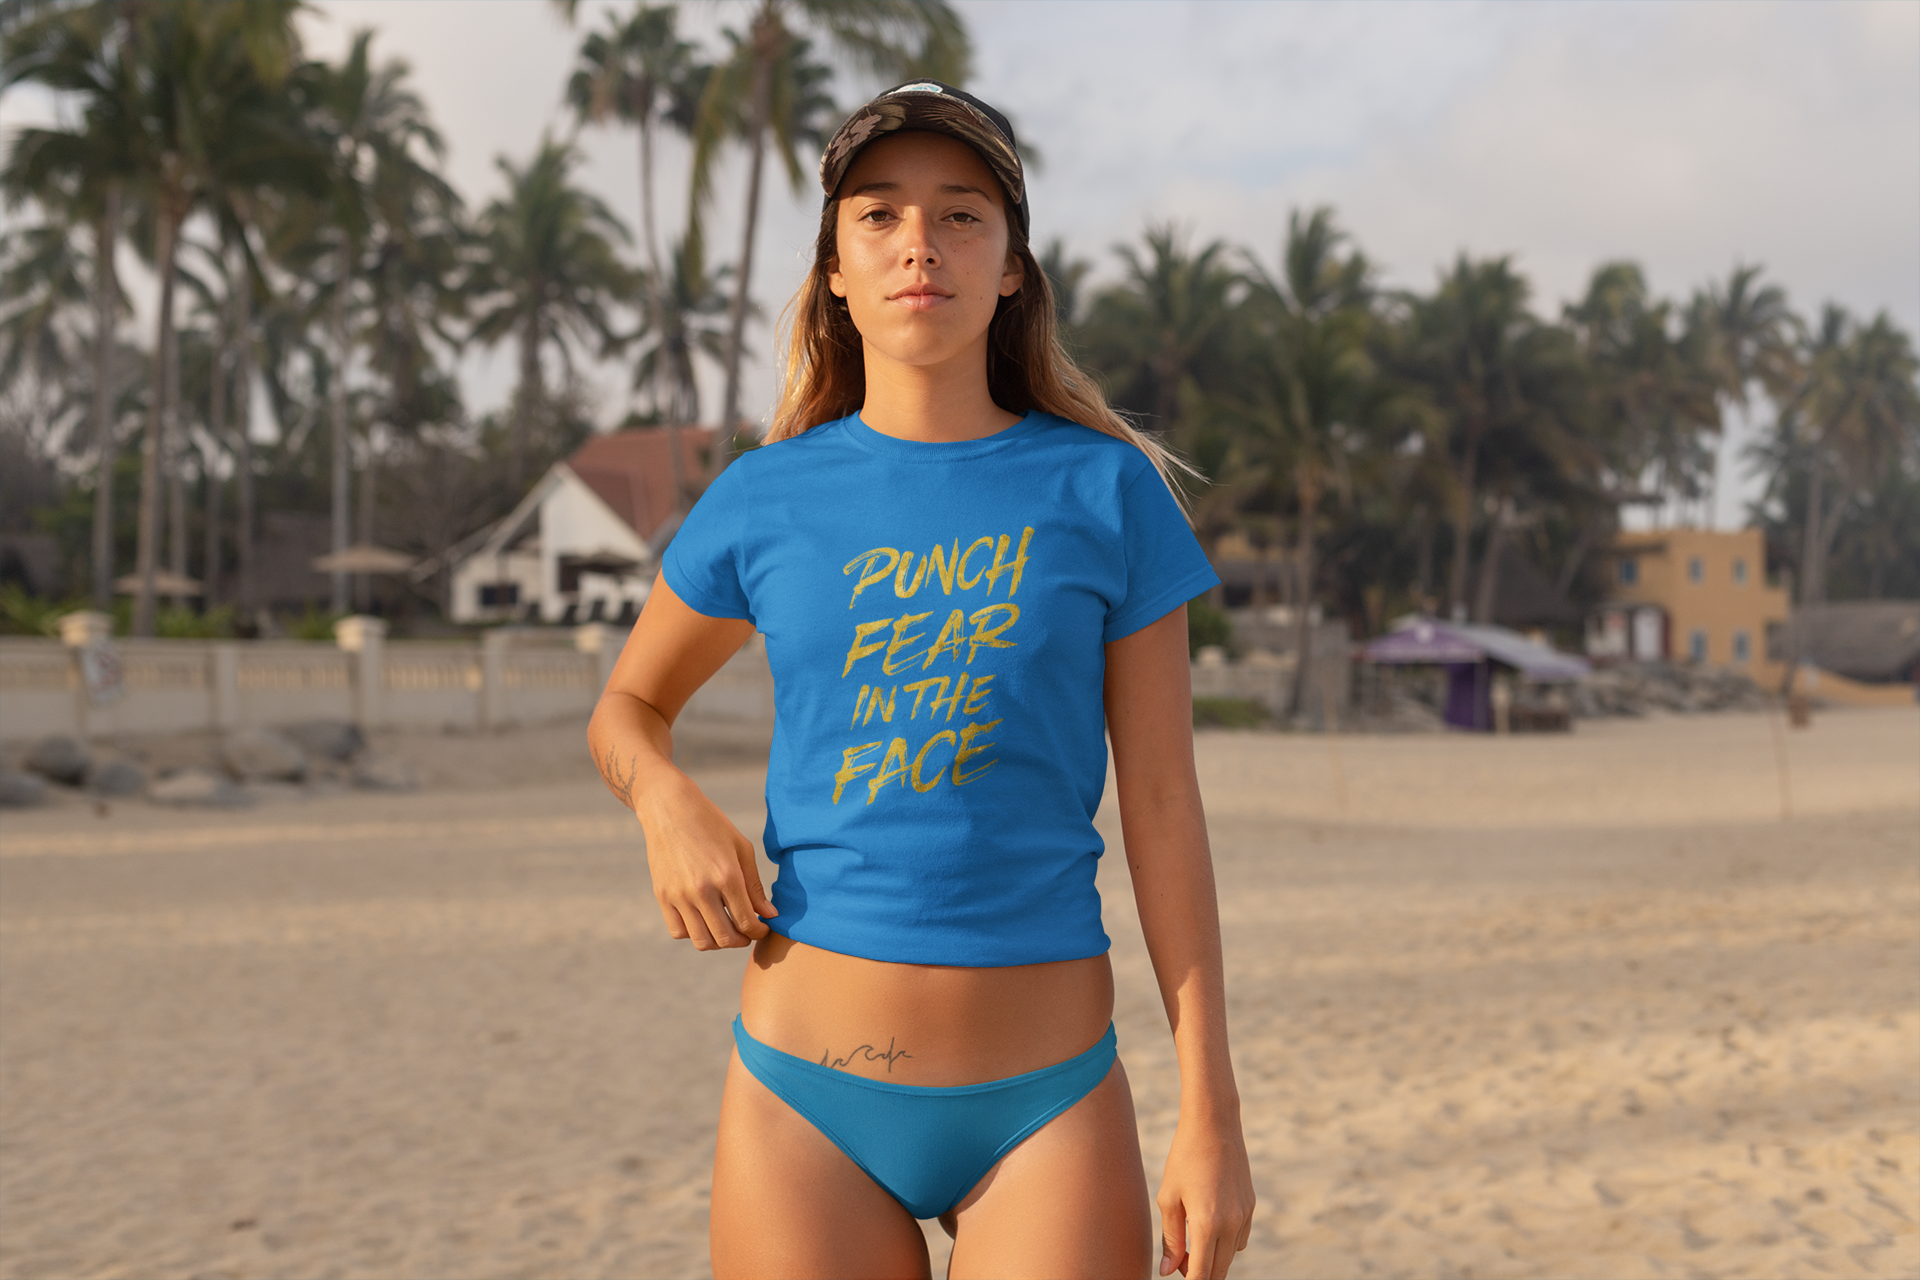 Surfer chick wearing Auspicious Victory t-shirt